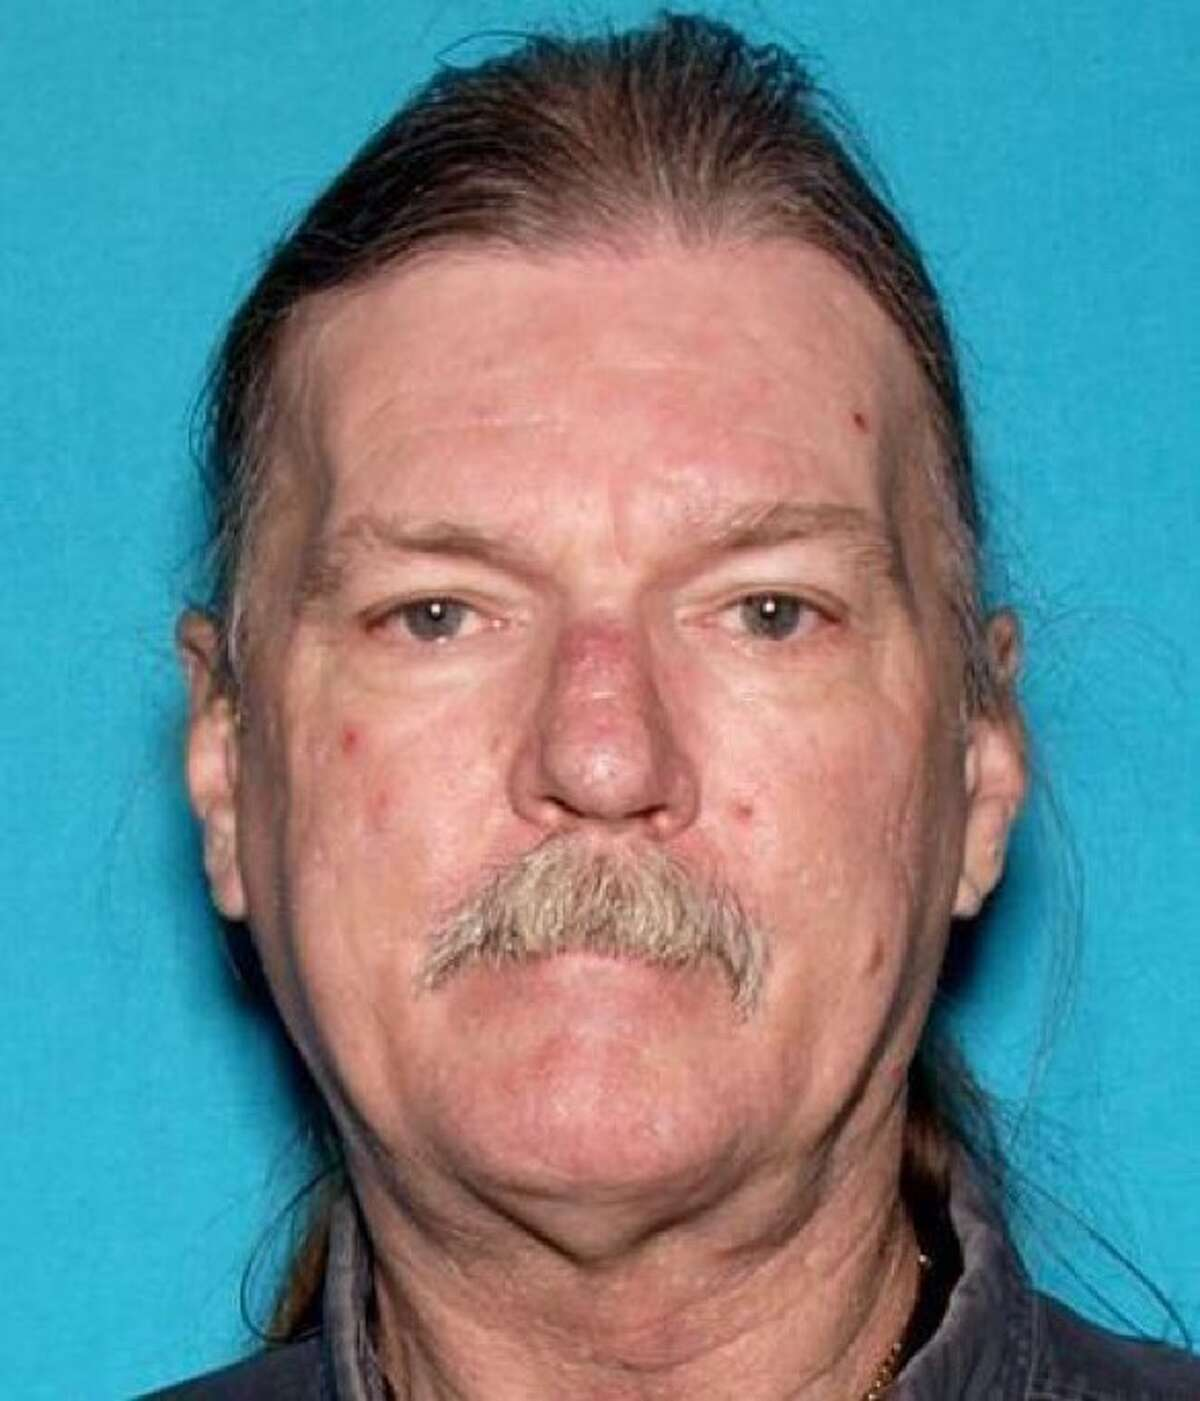 Scott Dunham, 57, suspected in the shooting death of a San Jose police officer on Tuesday.